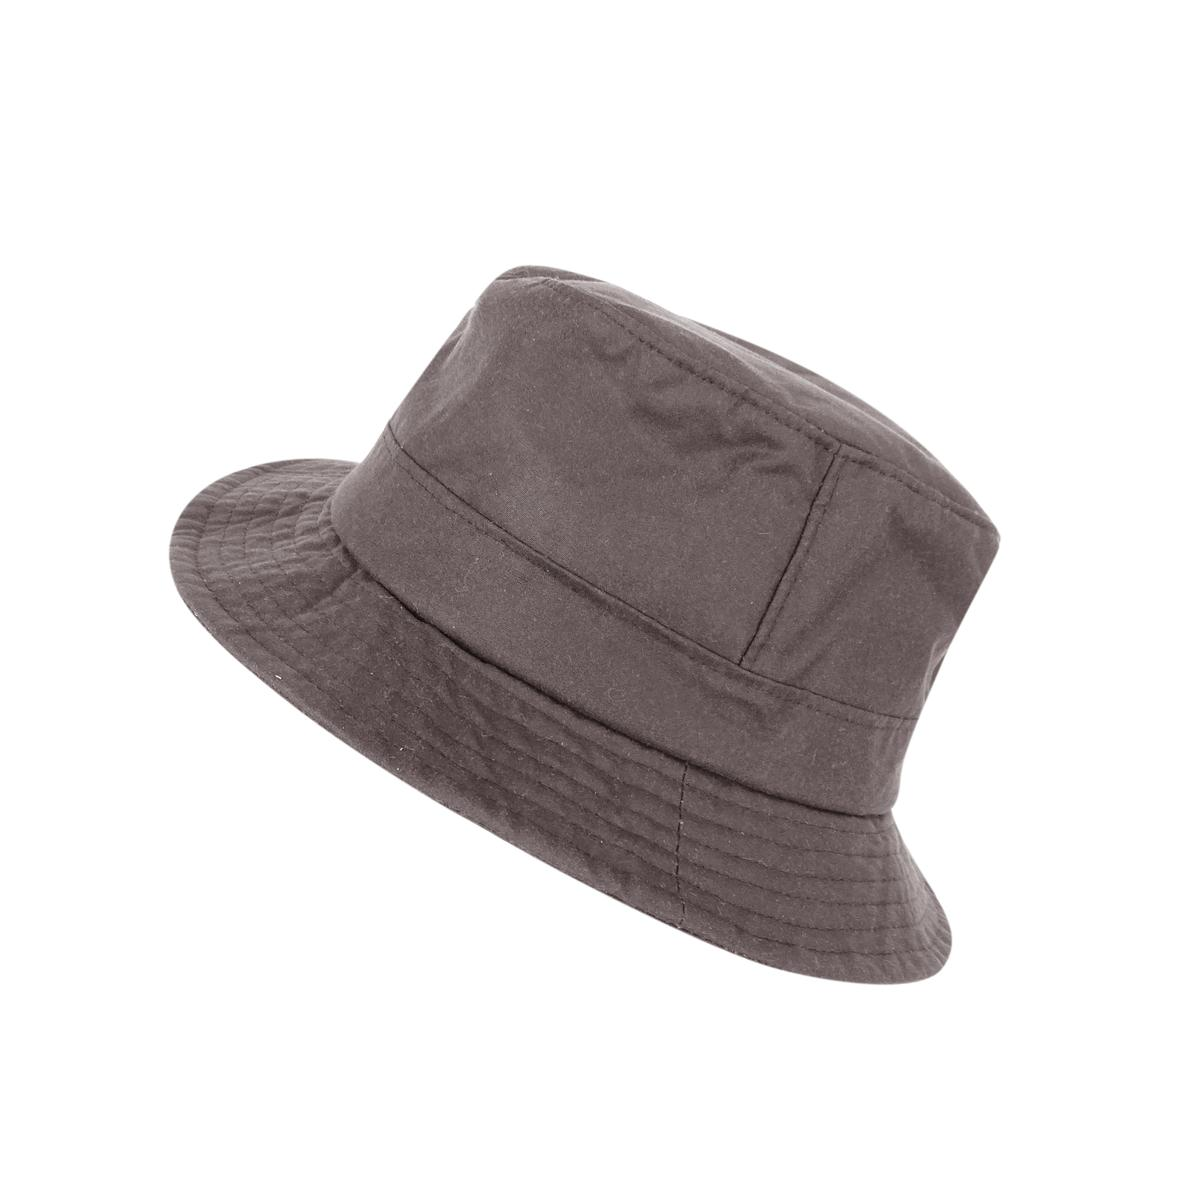 Hoggs of Fife Wax Trapper Hat